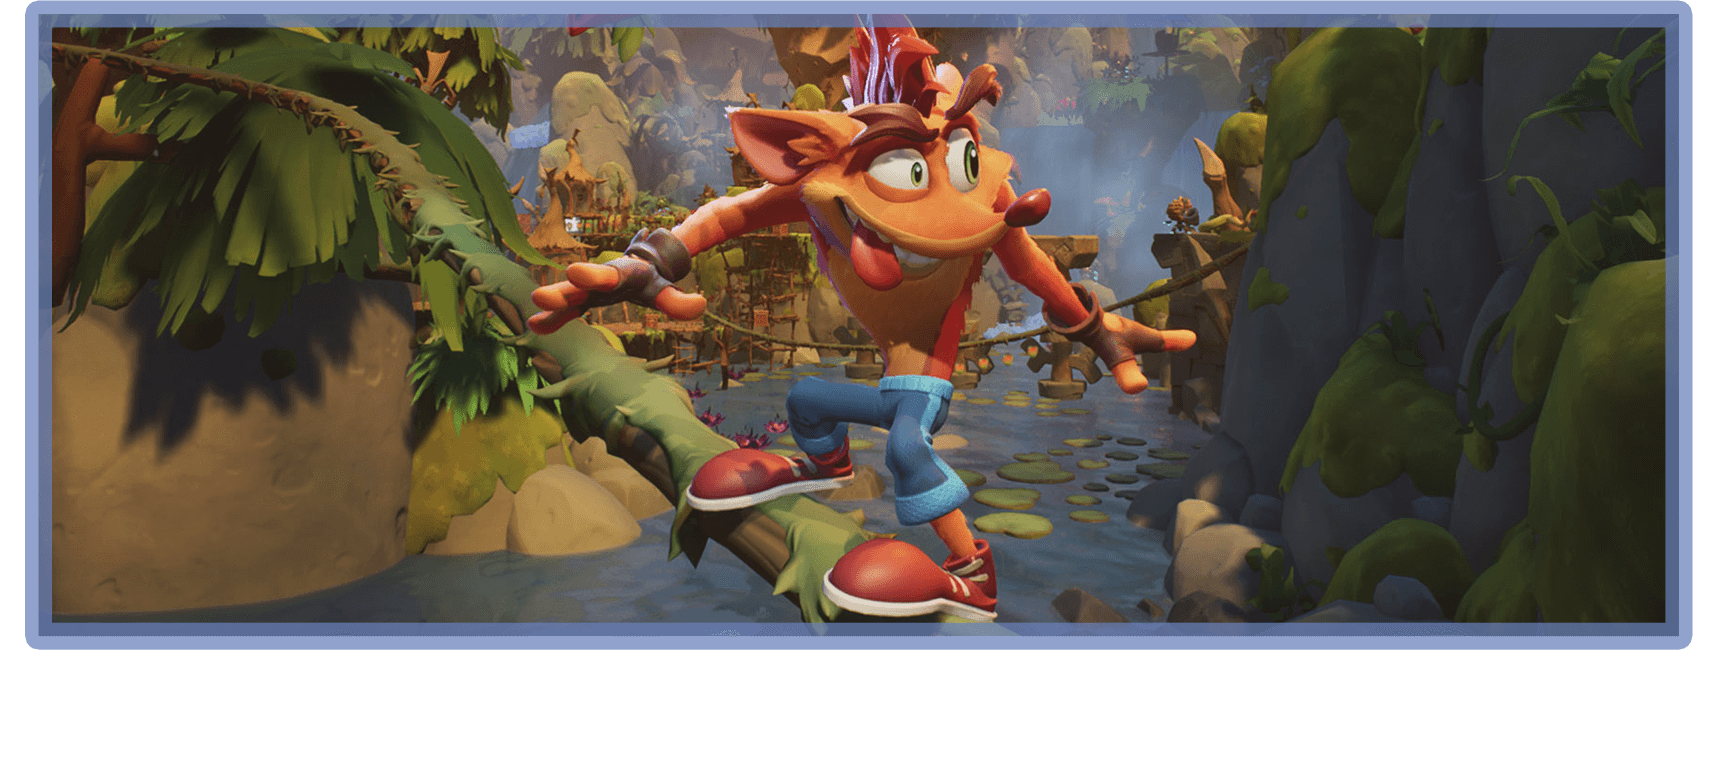 Crash Bandicoot 4: It's about time - Artwork